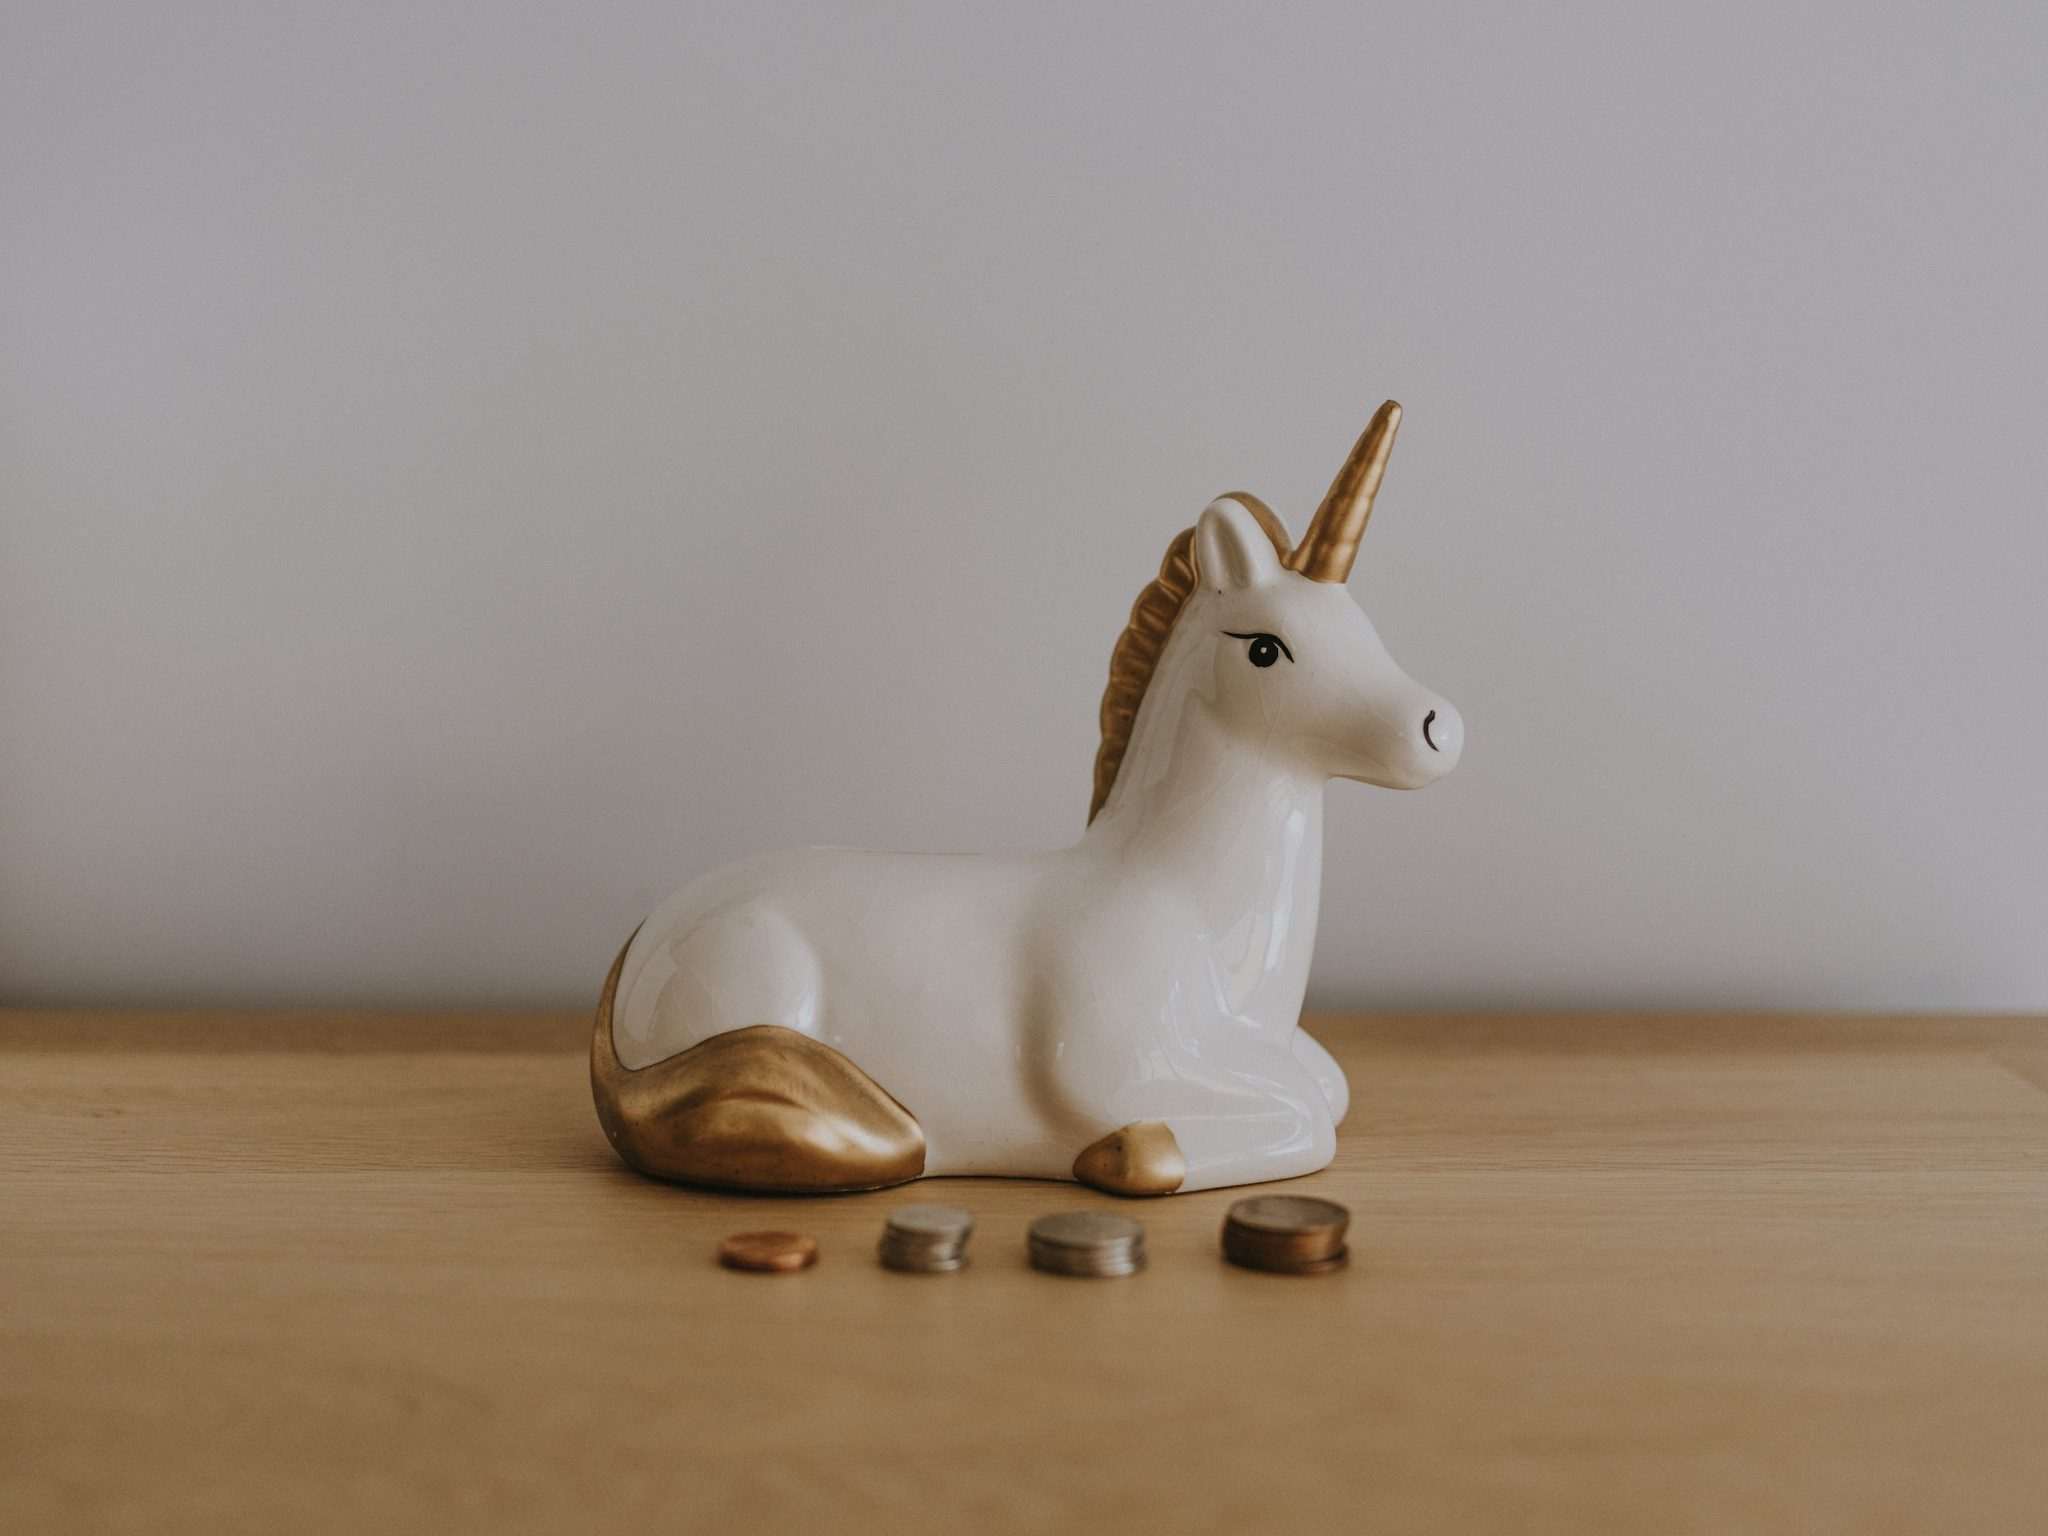 Teaser imagery for Europe's startup unicorns